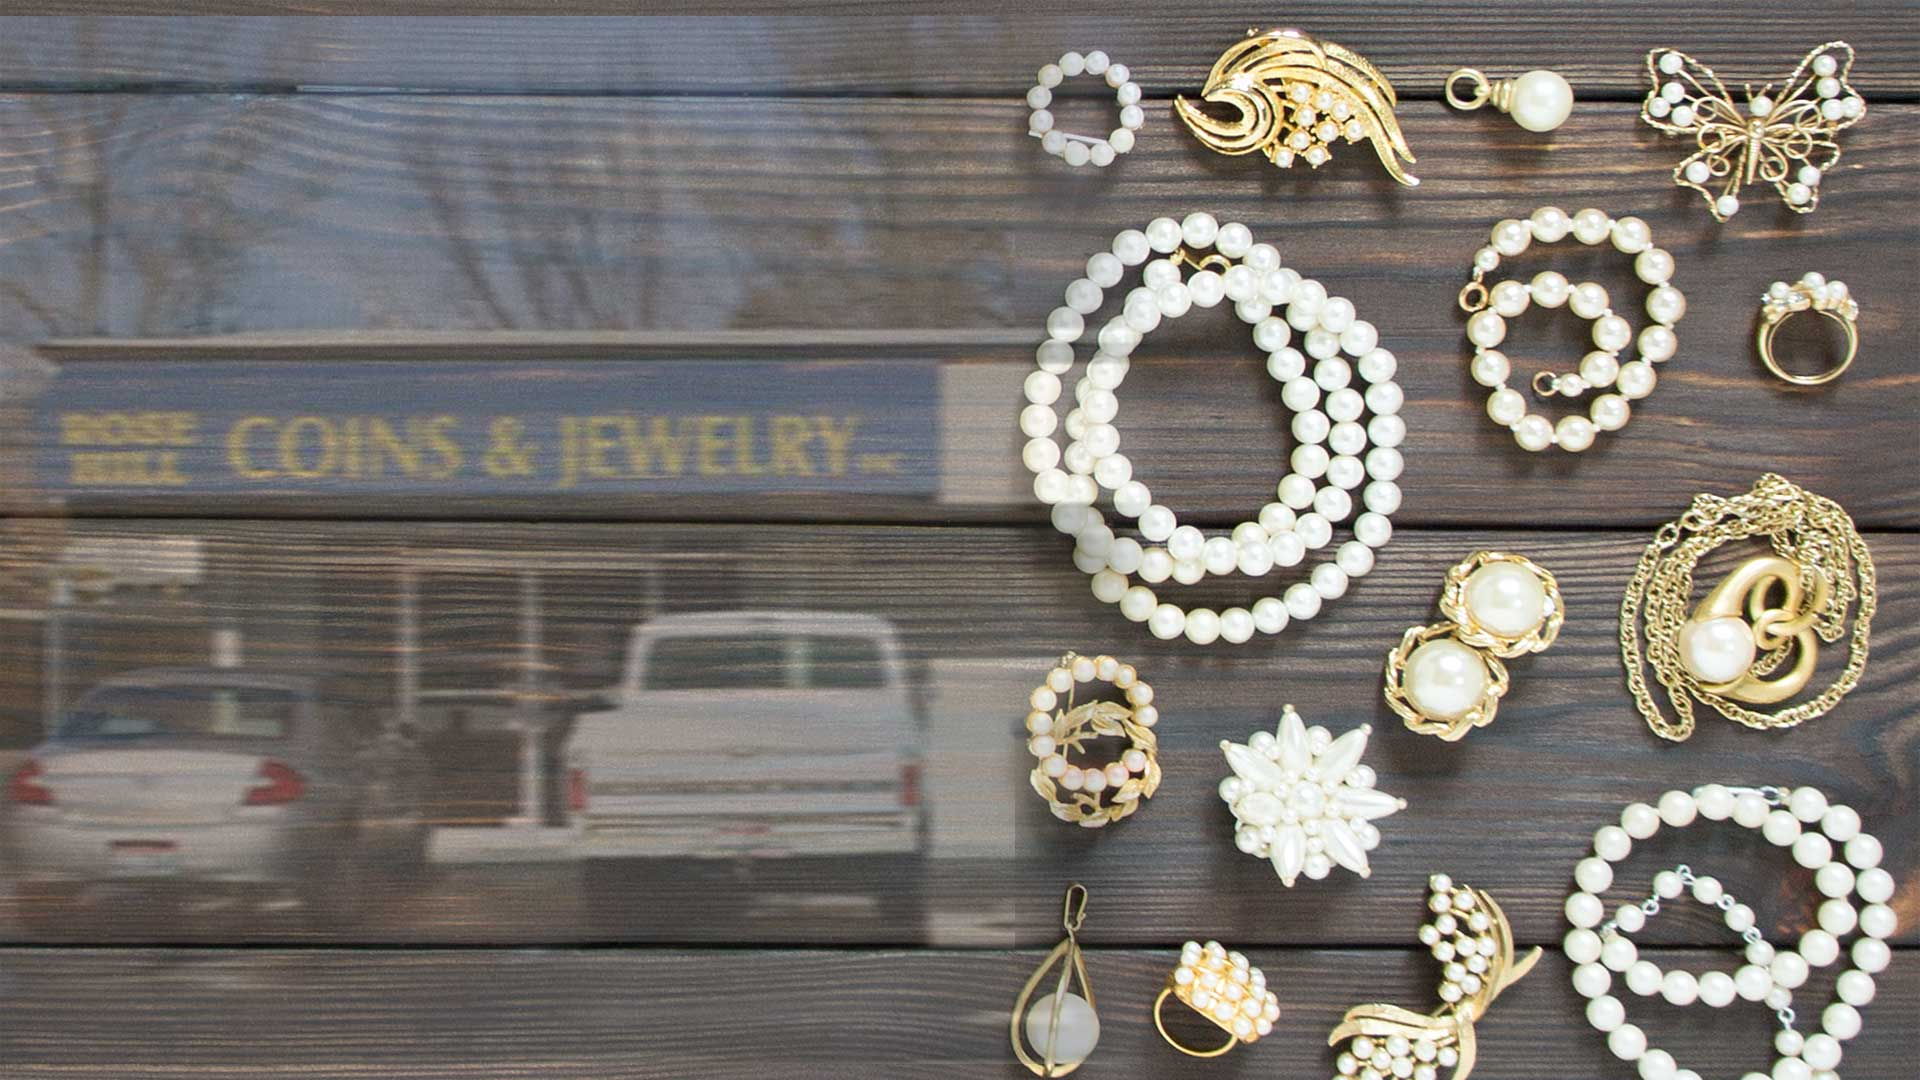 Rose Hill Coin and Jewelry | Boise, ID | Jewelry Store